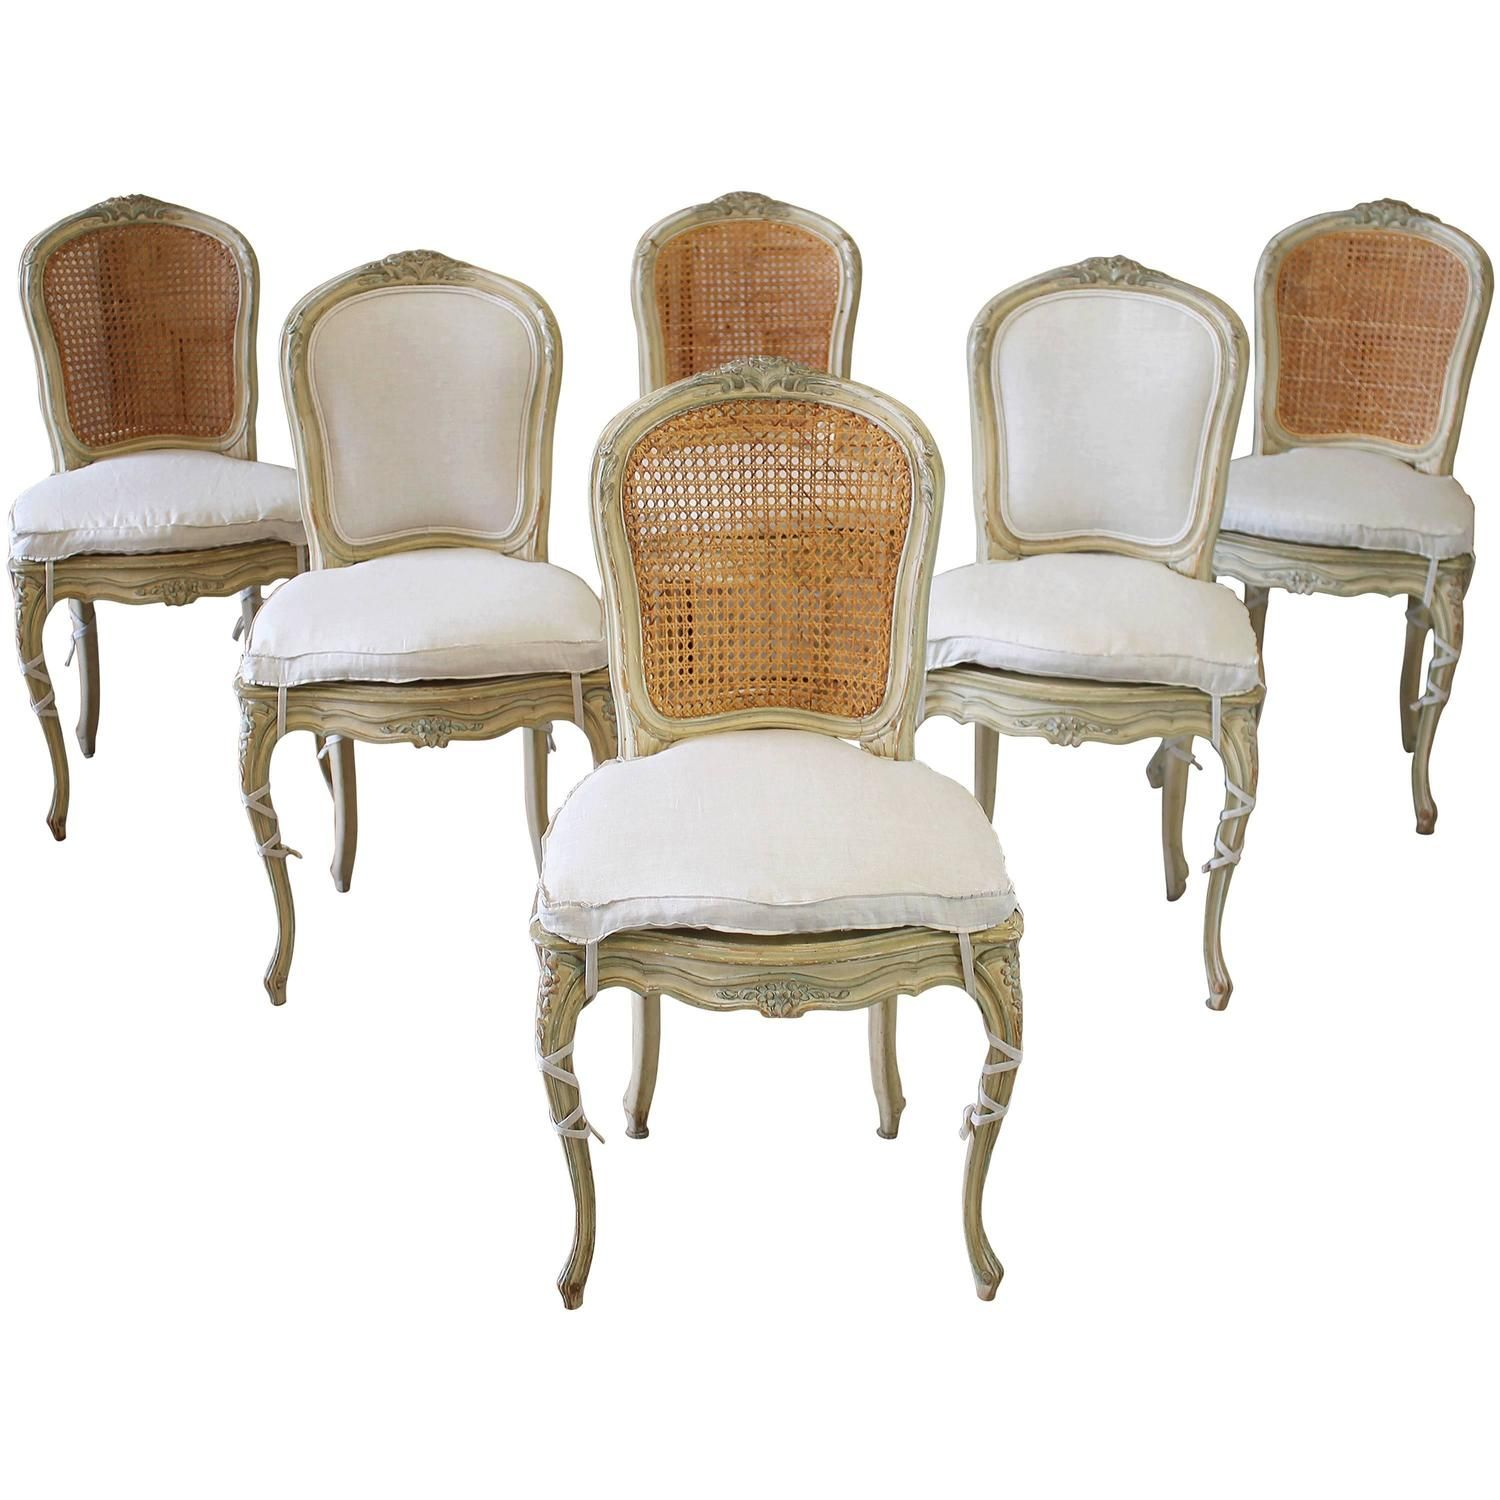 antique cane dining room chairs of the world gw2 19th century louis xv french with original paint